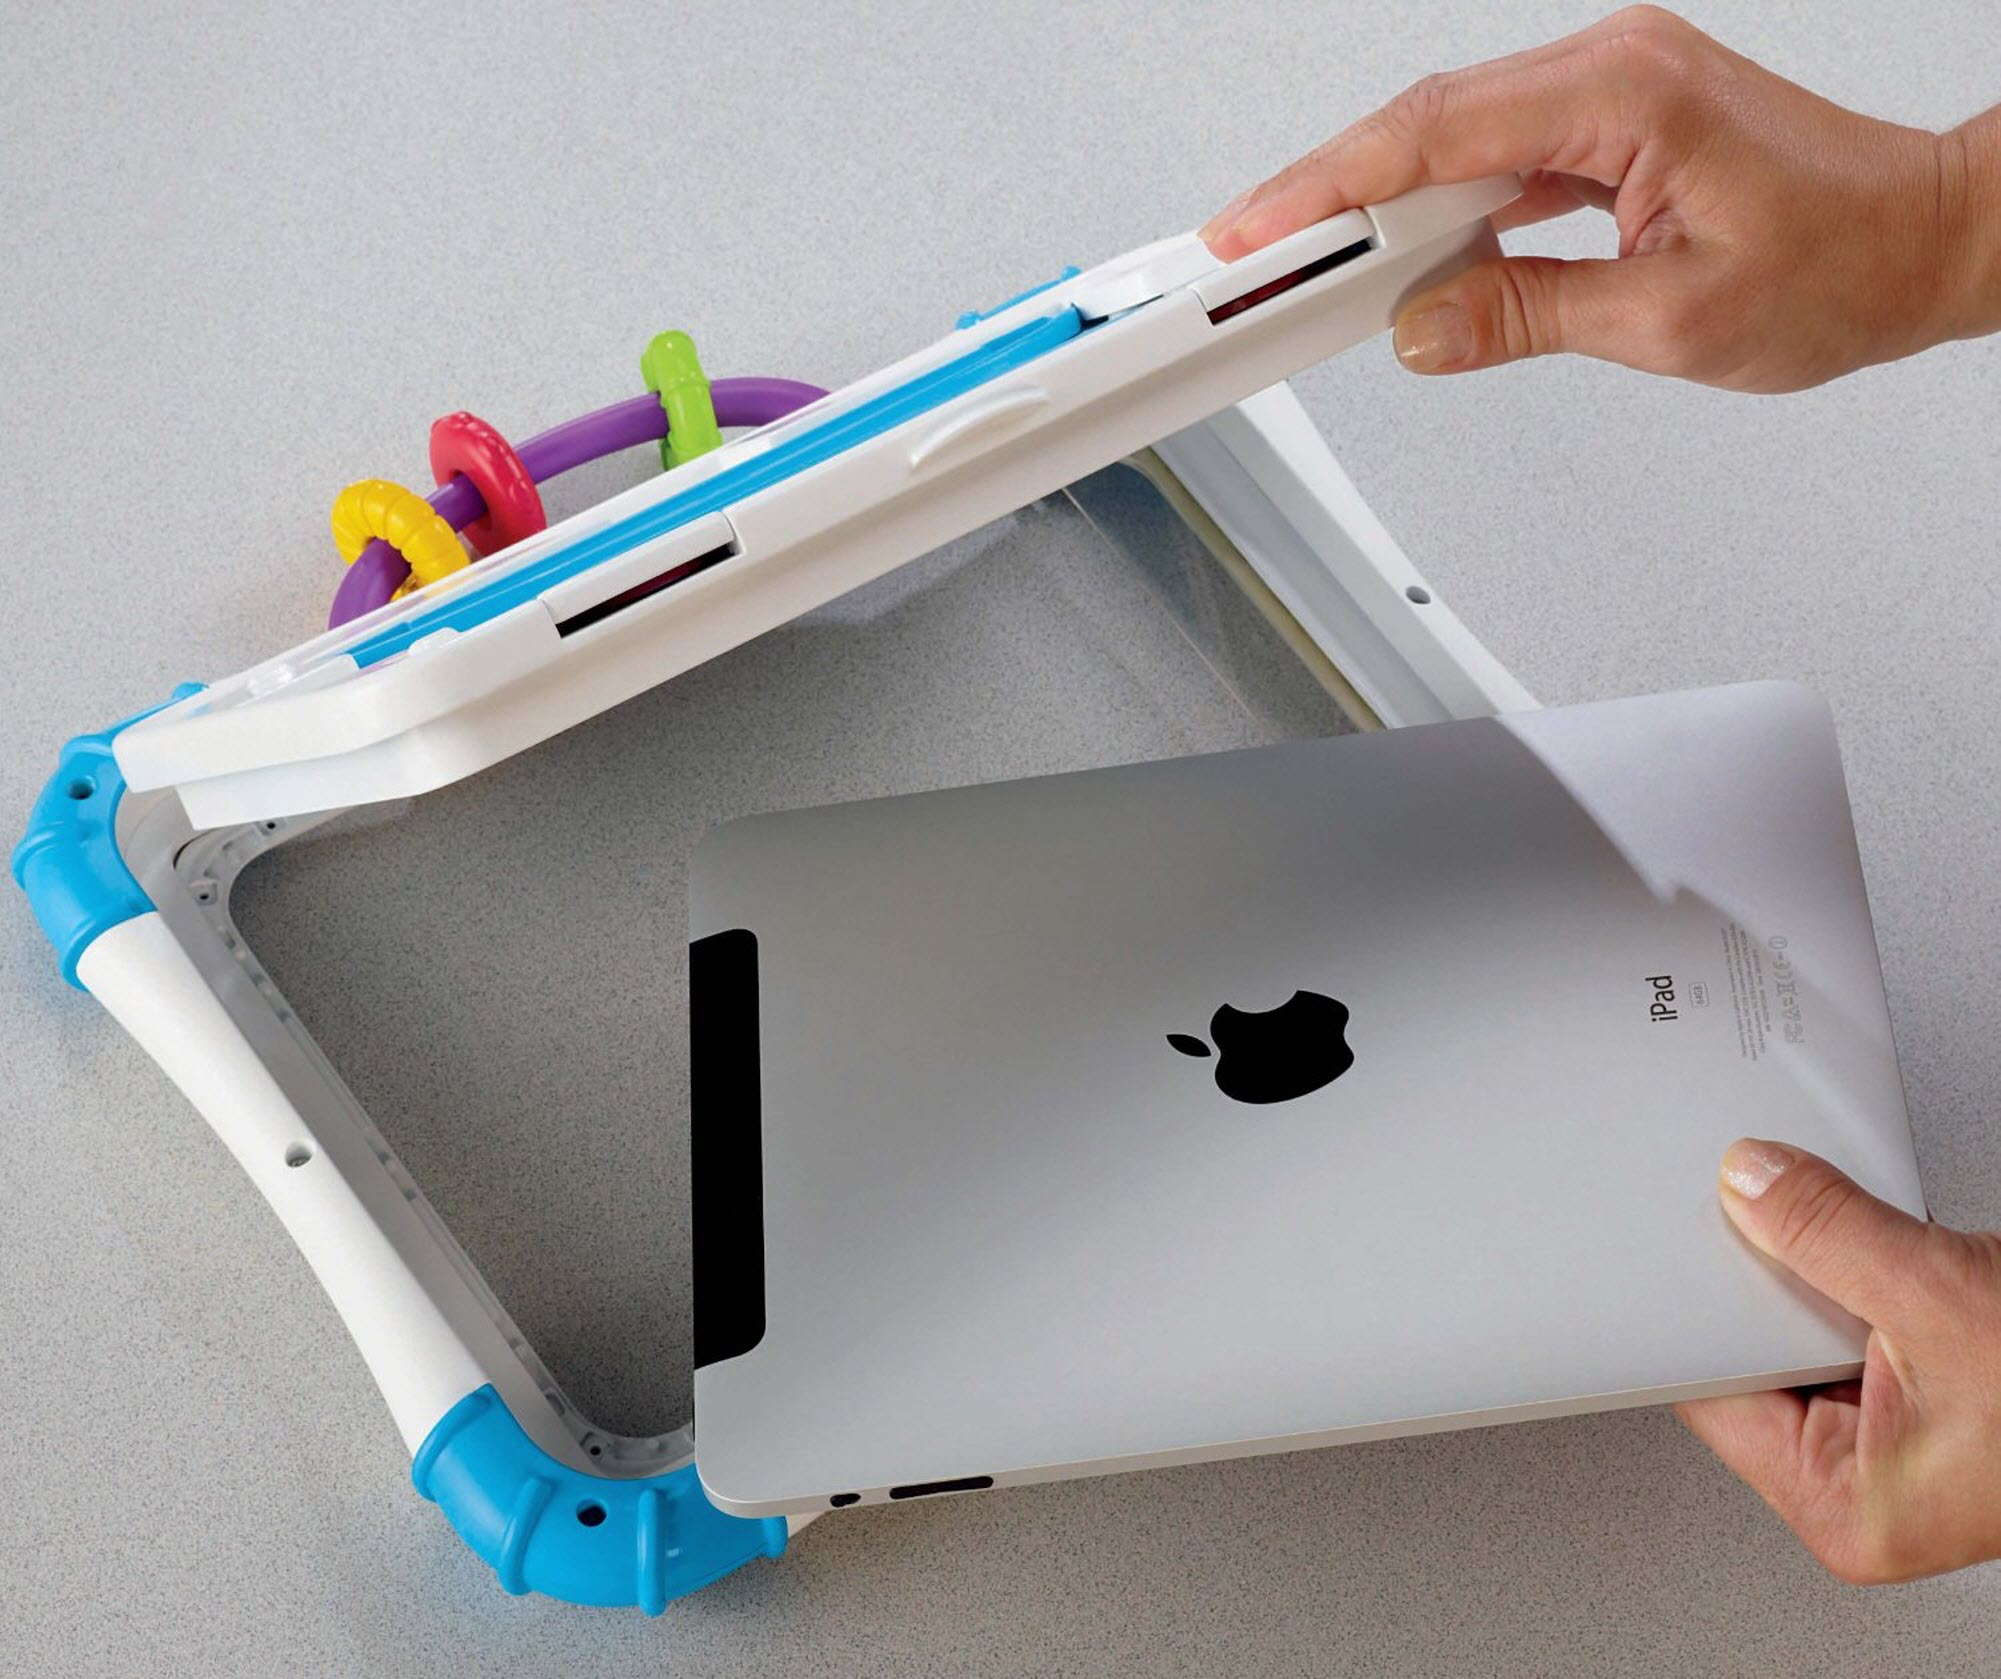 Protective iPad case for babies